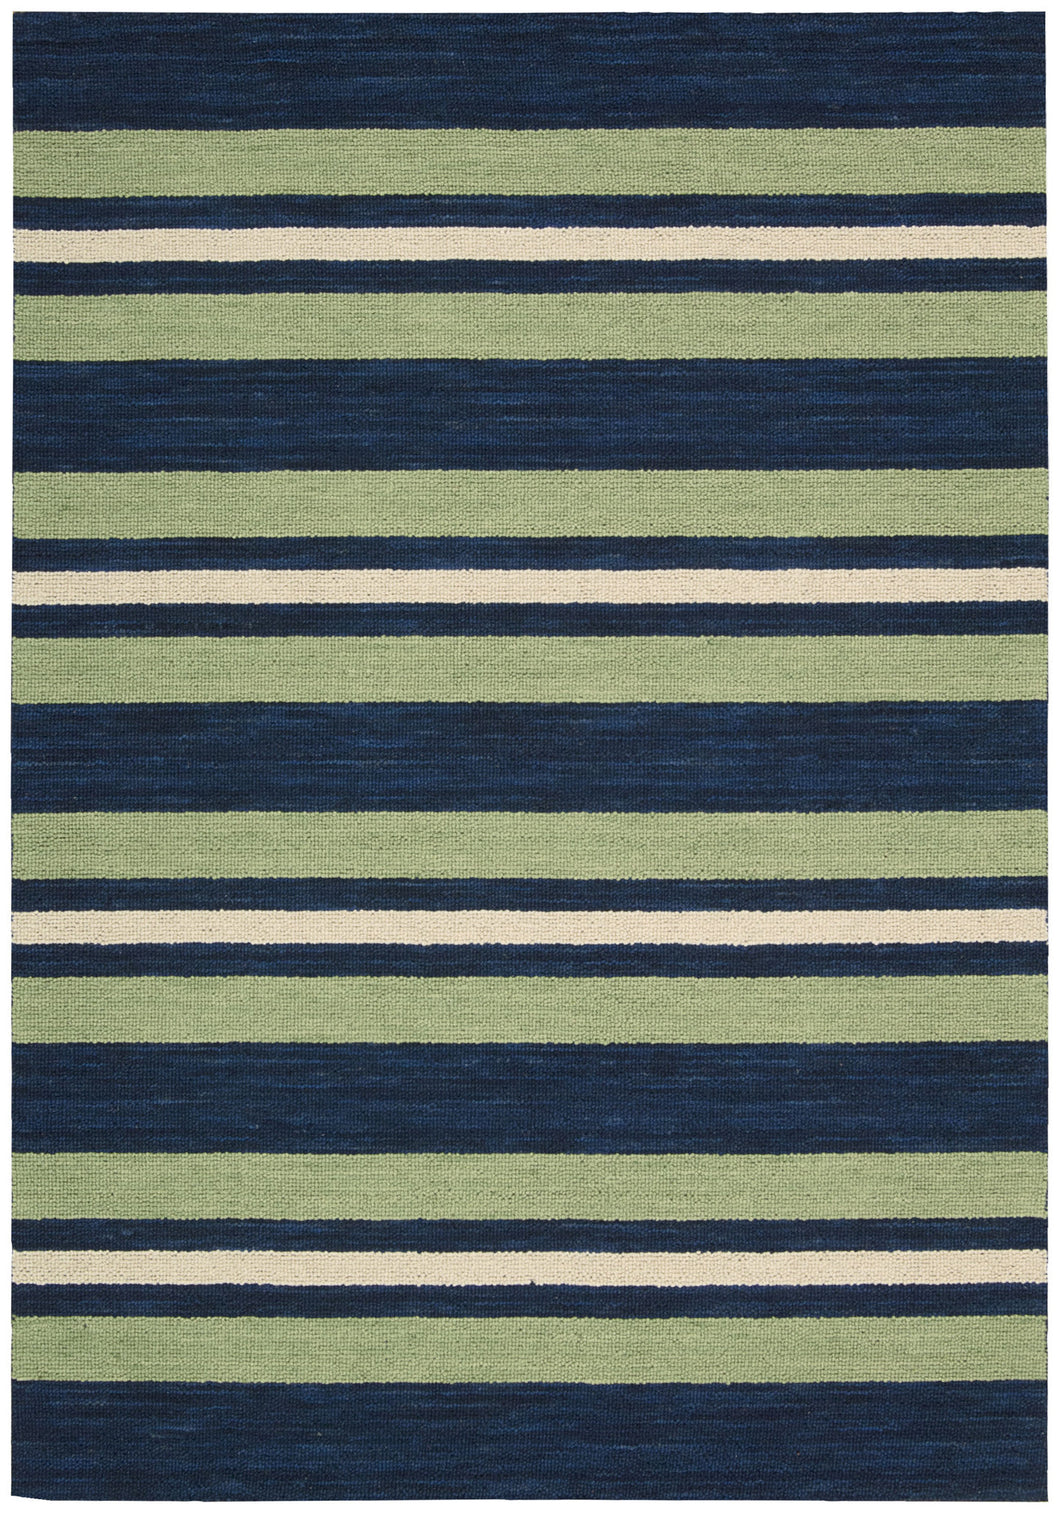 Barclay Butera Oxford Breeze Area Rug By Nourison OXFD5 BREEZ (Rectangle) | BOGO USA